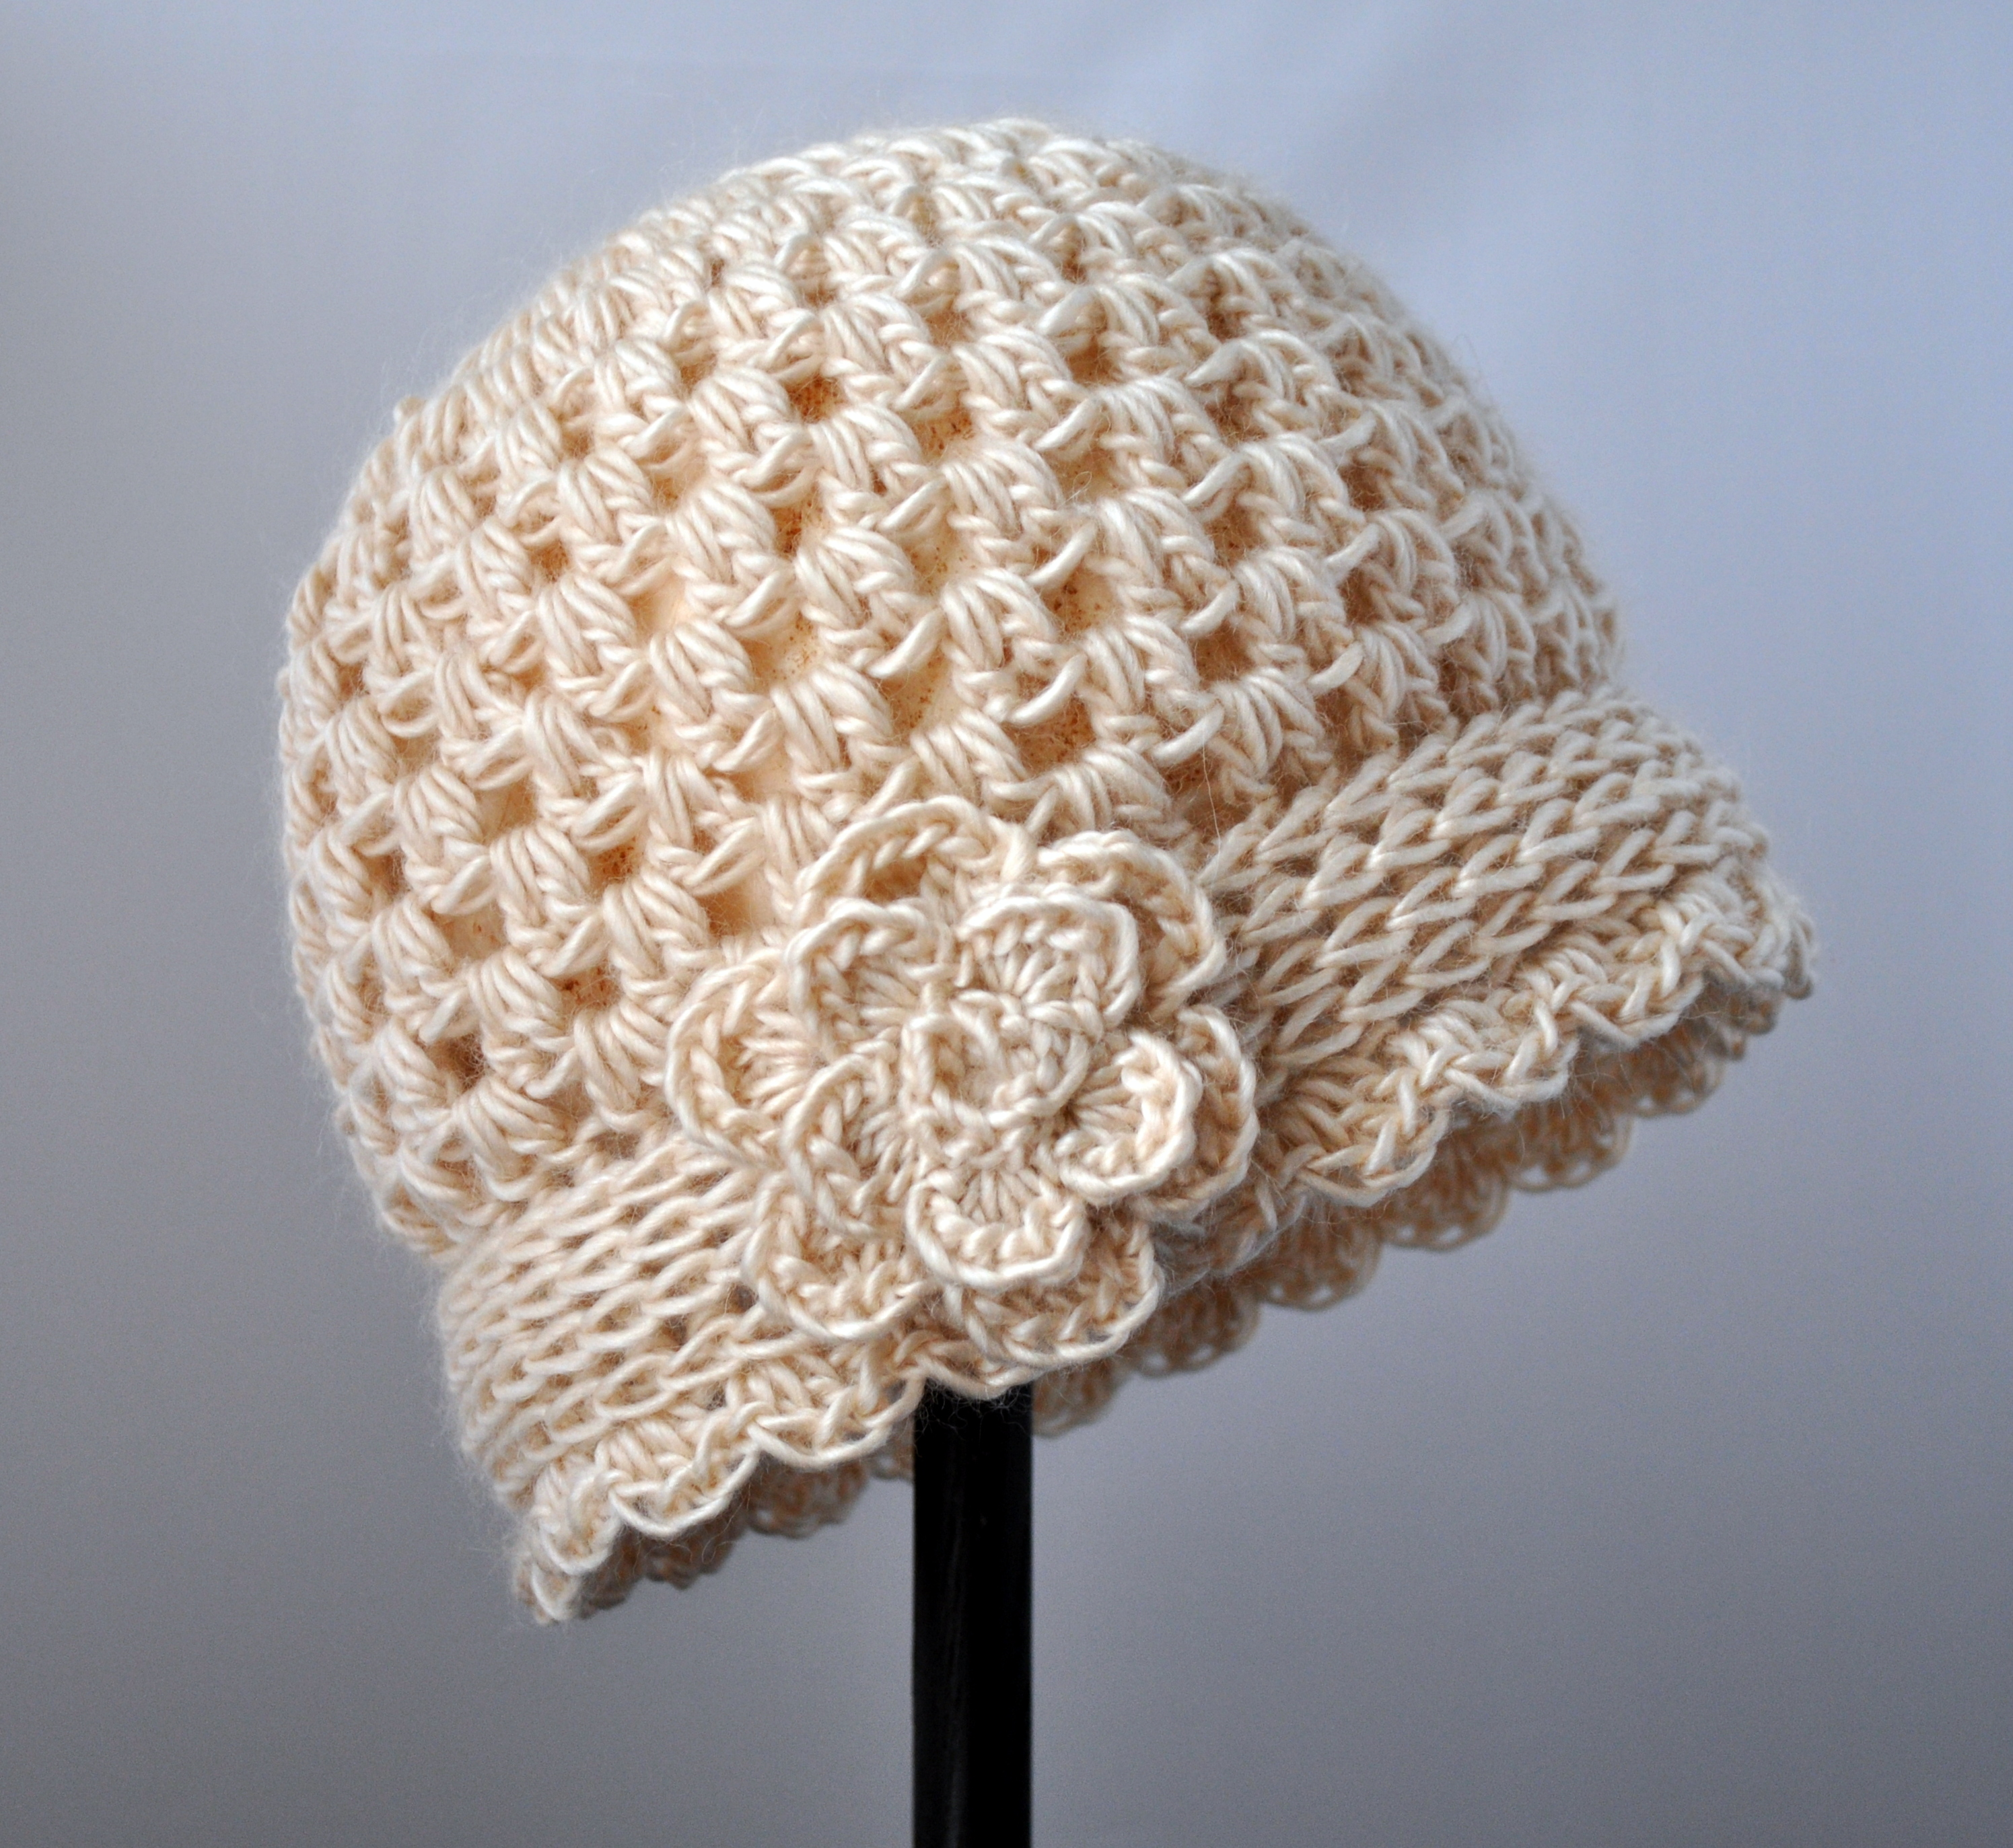 Crochet Patterns To Purchase : Crochet Vintage Flowered Cloche Pattern Classy Crochet